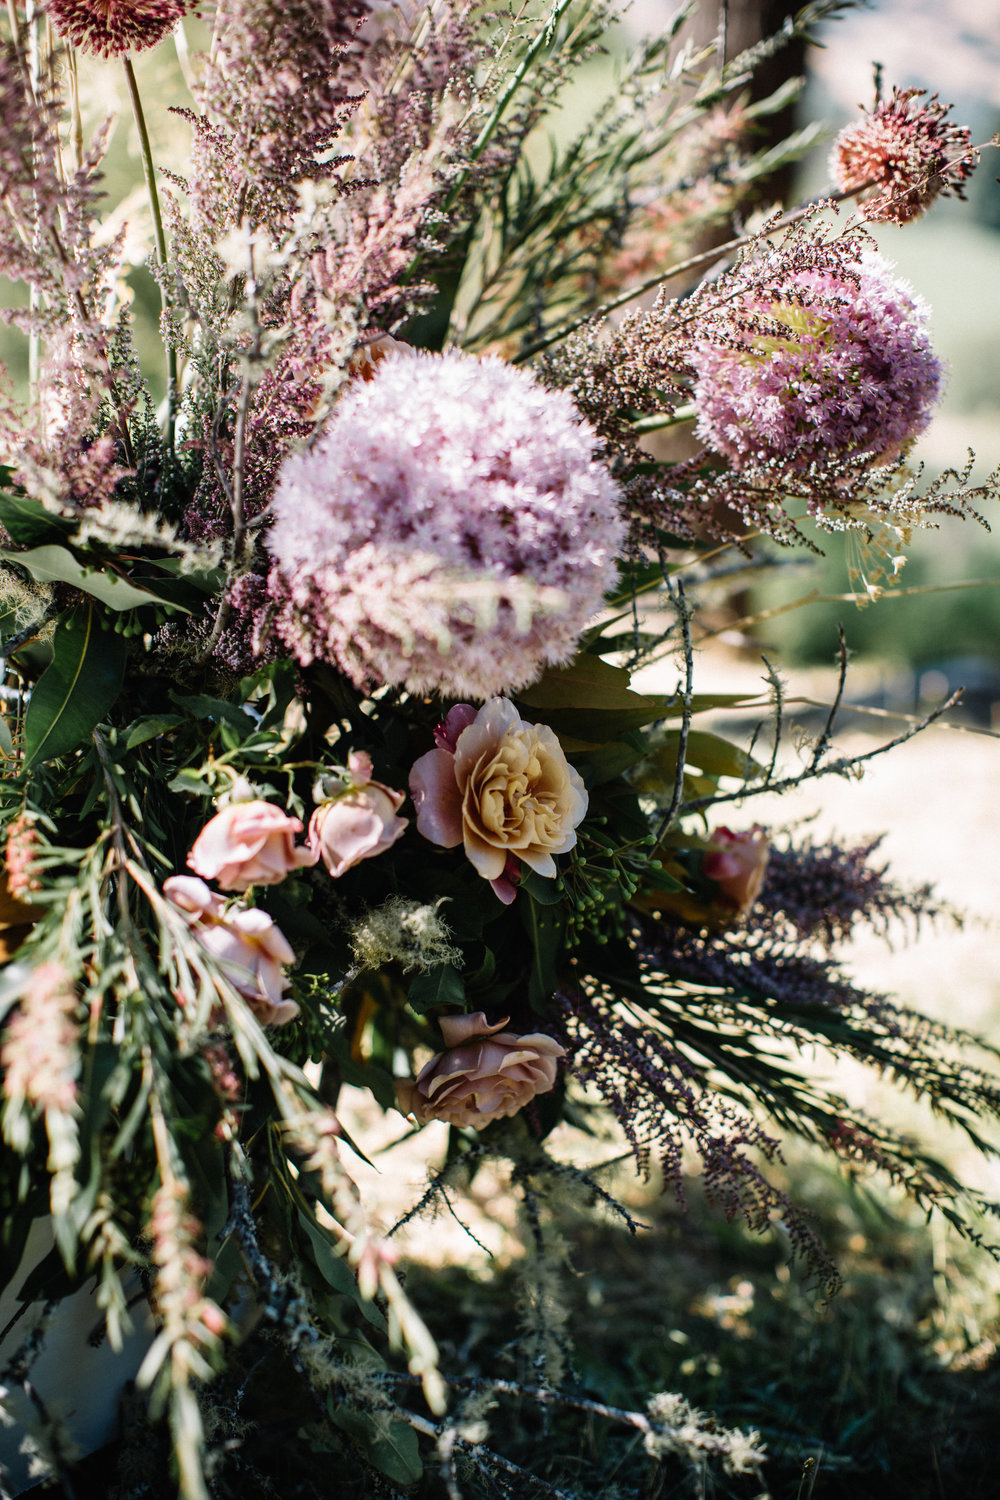 Allium, garden rose and pink bottle brush installation by Venn Floral at Wild Iris Retreat photographed by Lucille Lawrence in Philo, California.